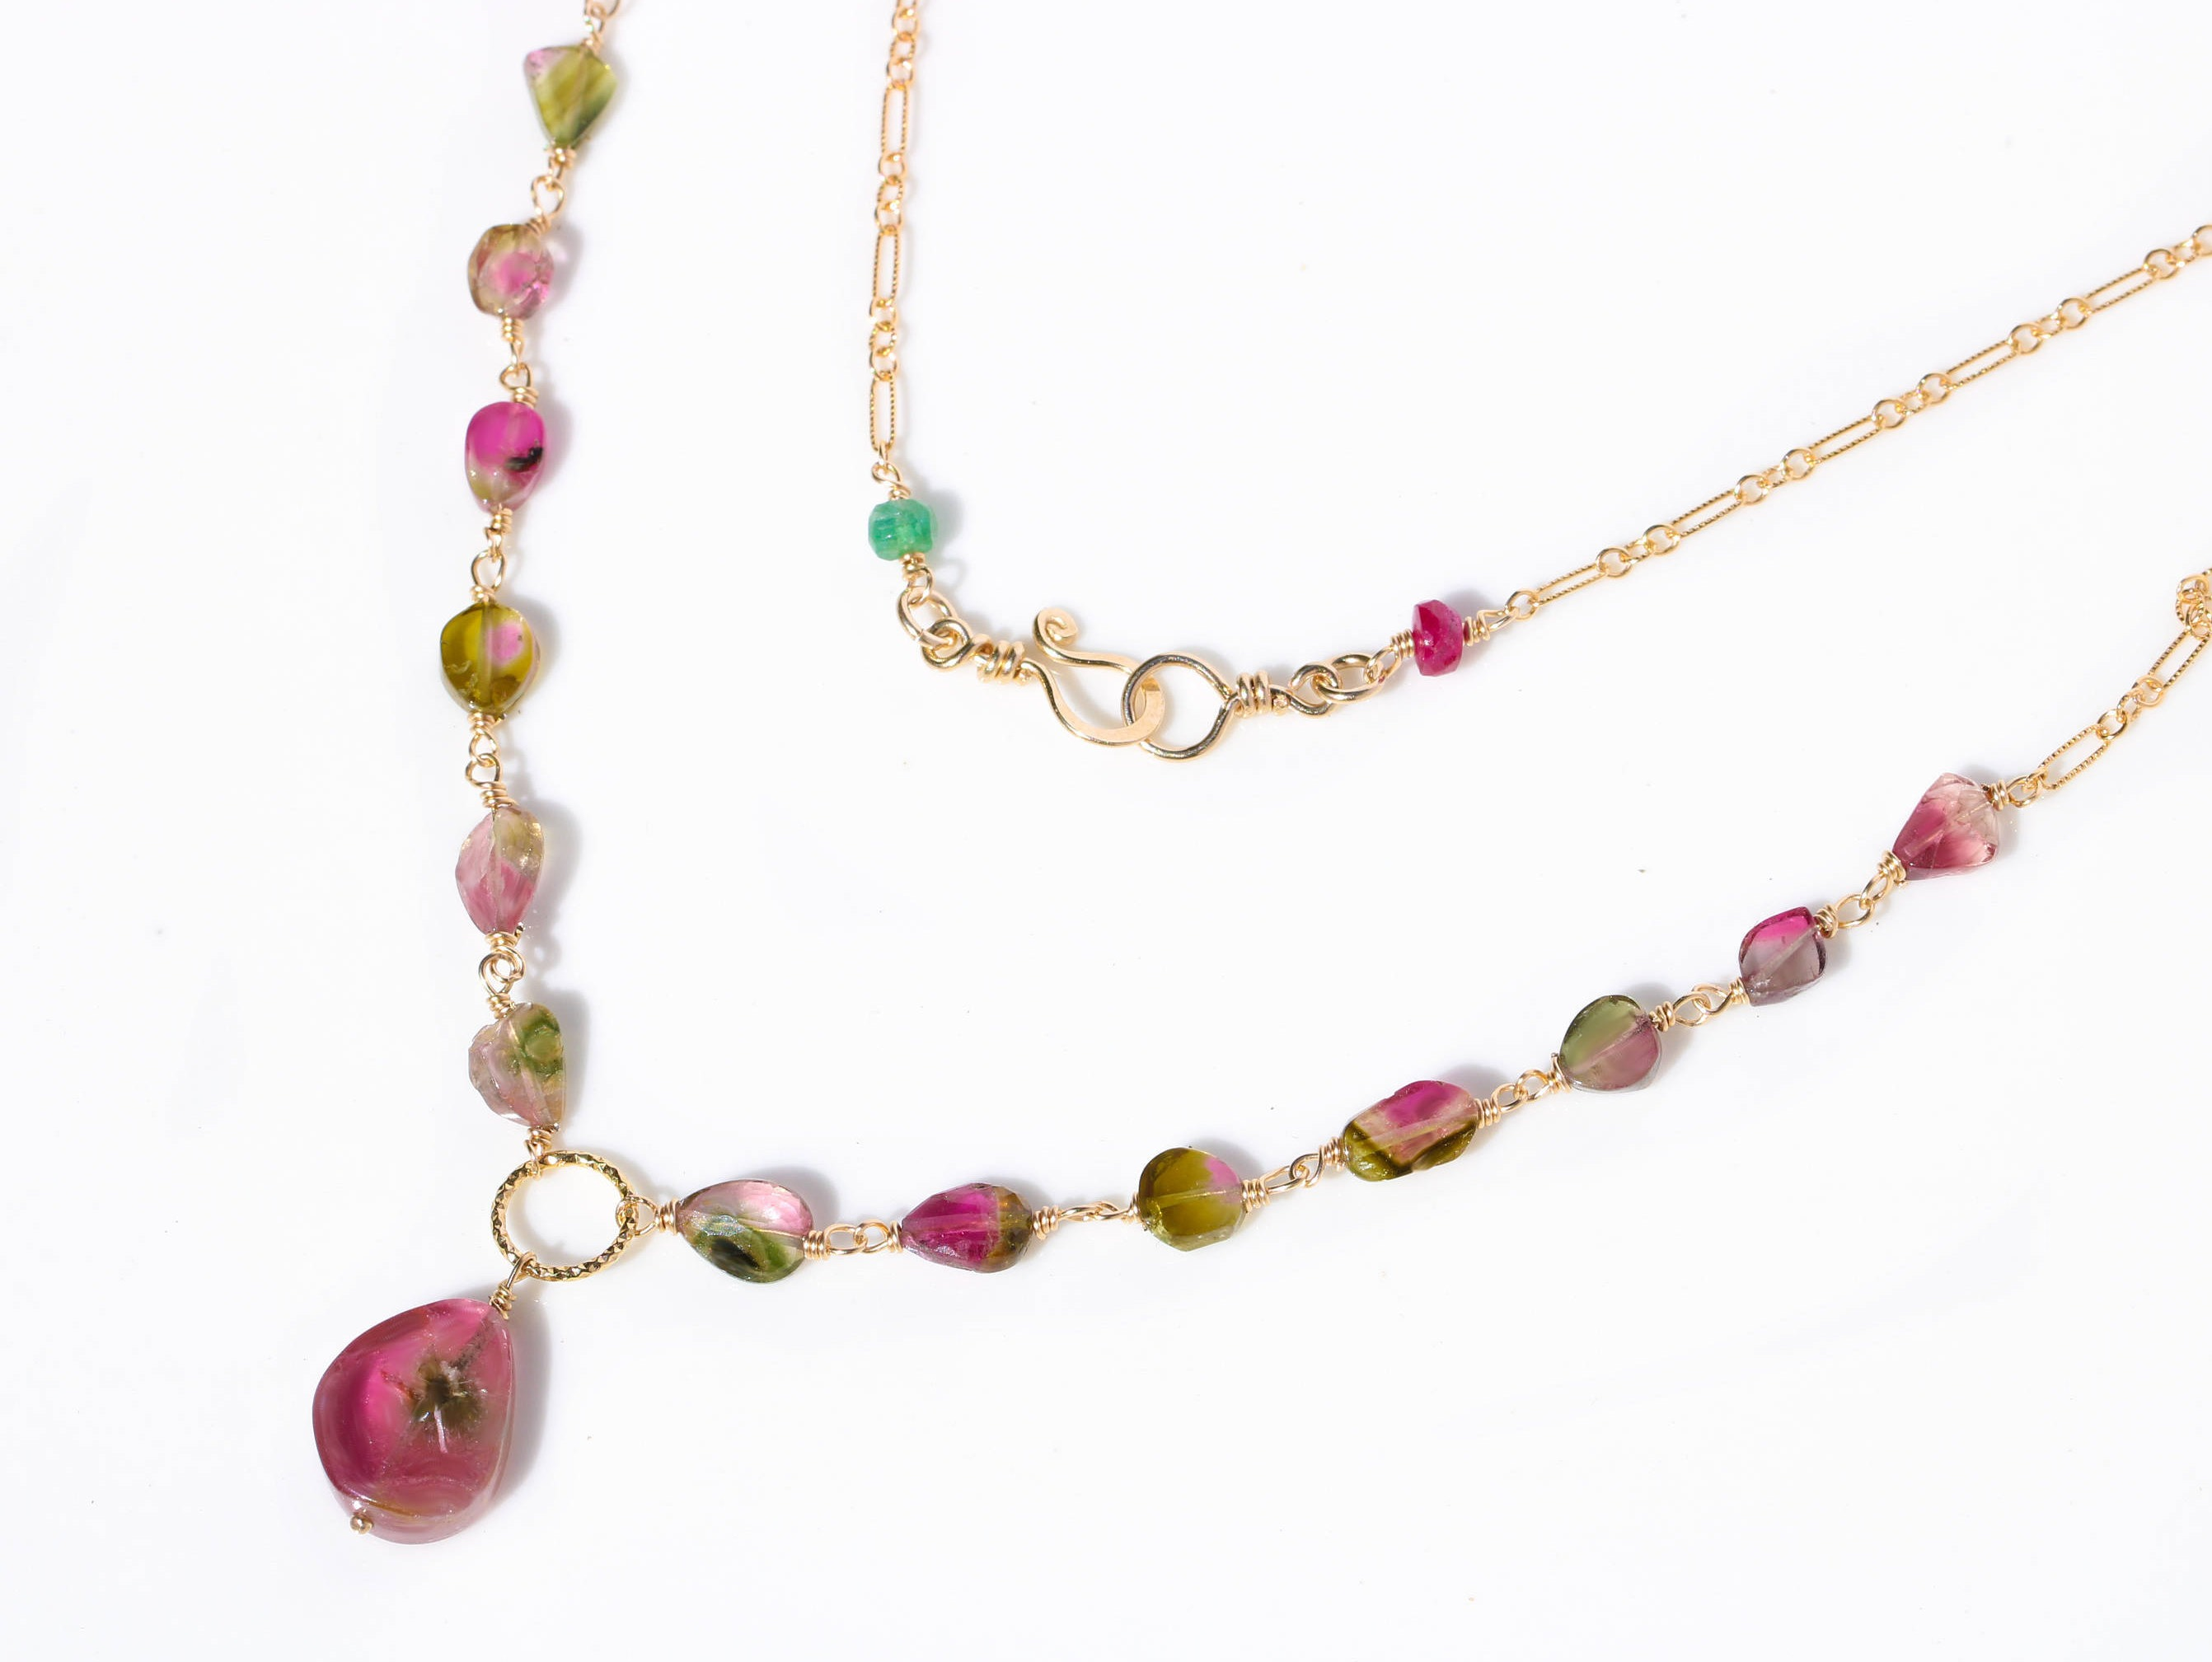 Watermelon Tourmaline Slice Necklace Wire Wrapped in Gold Filled ...